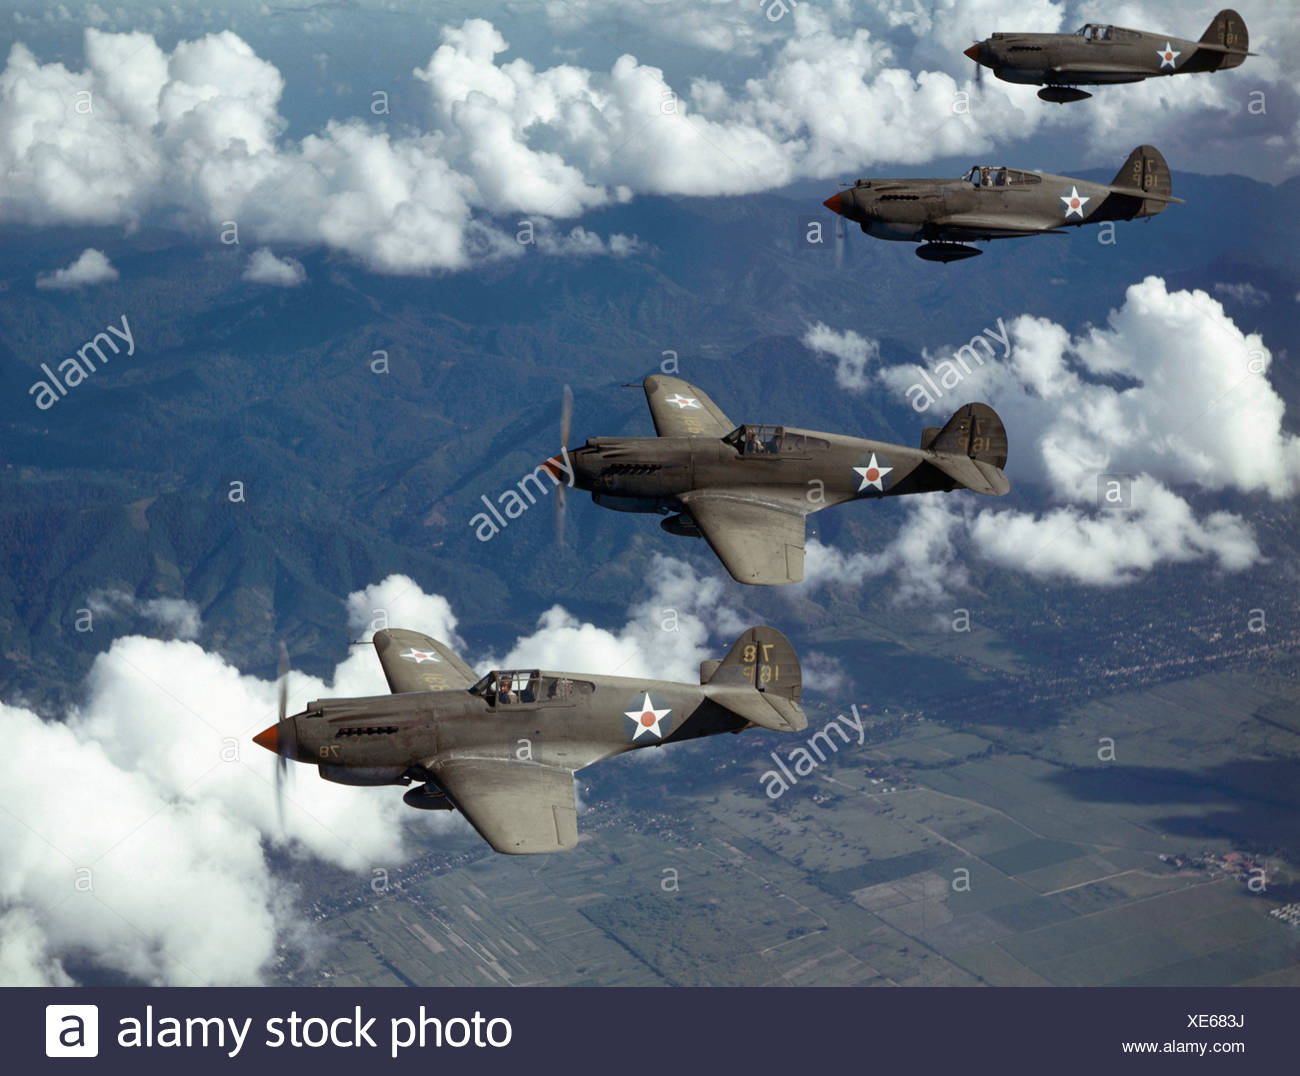 P-40 Pursuits of the U.S. Army Air Corps patrol over Trinidad. - Stock Image